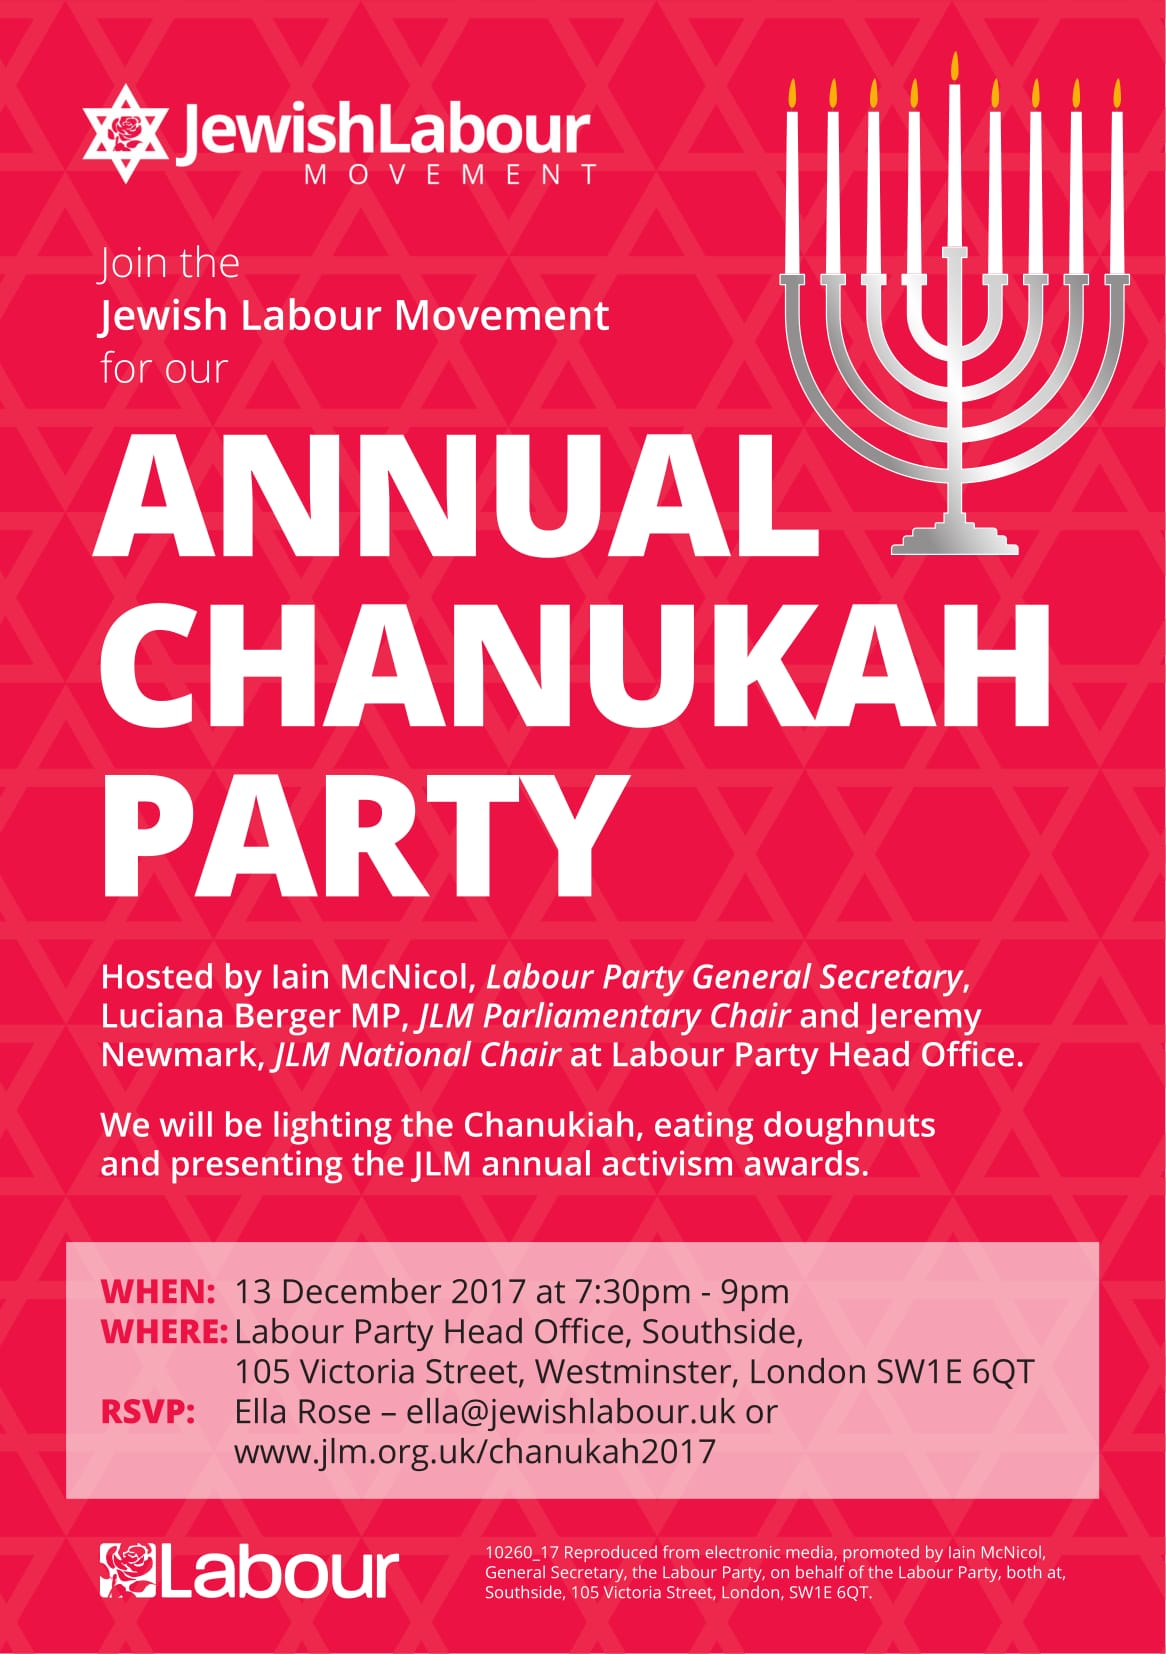 chanukah_invite.jpg